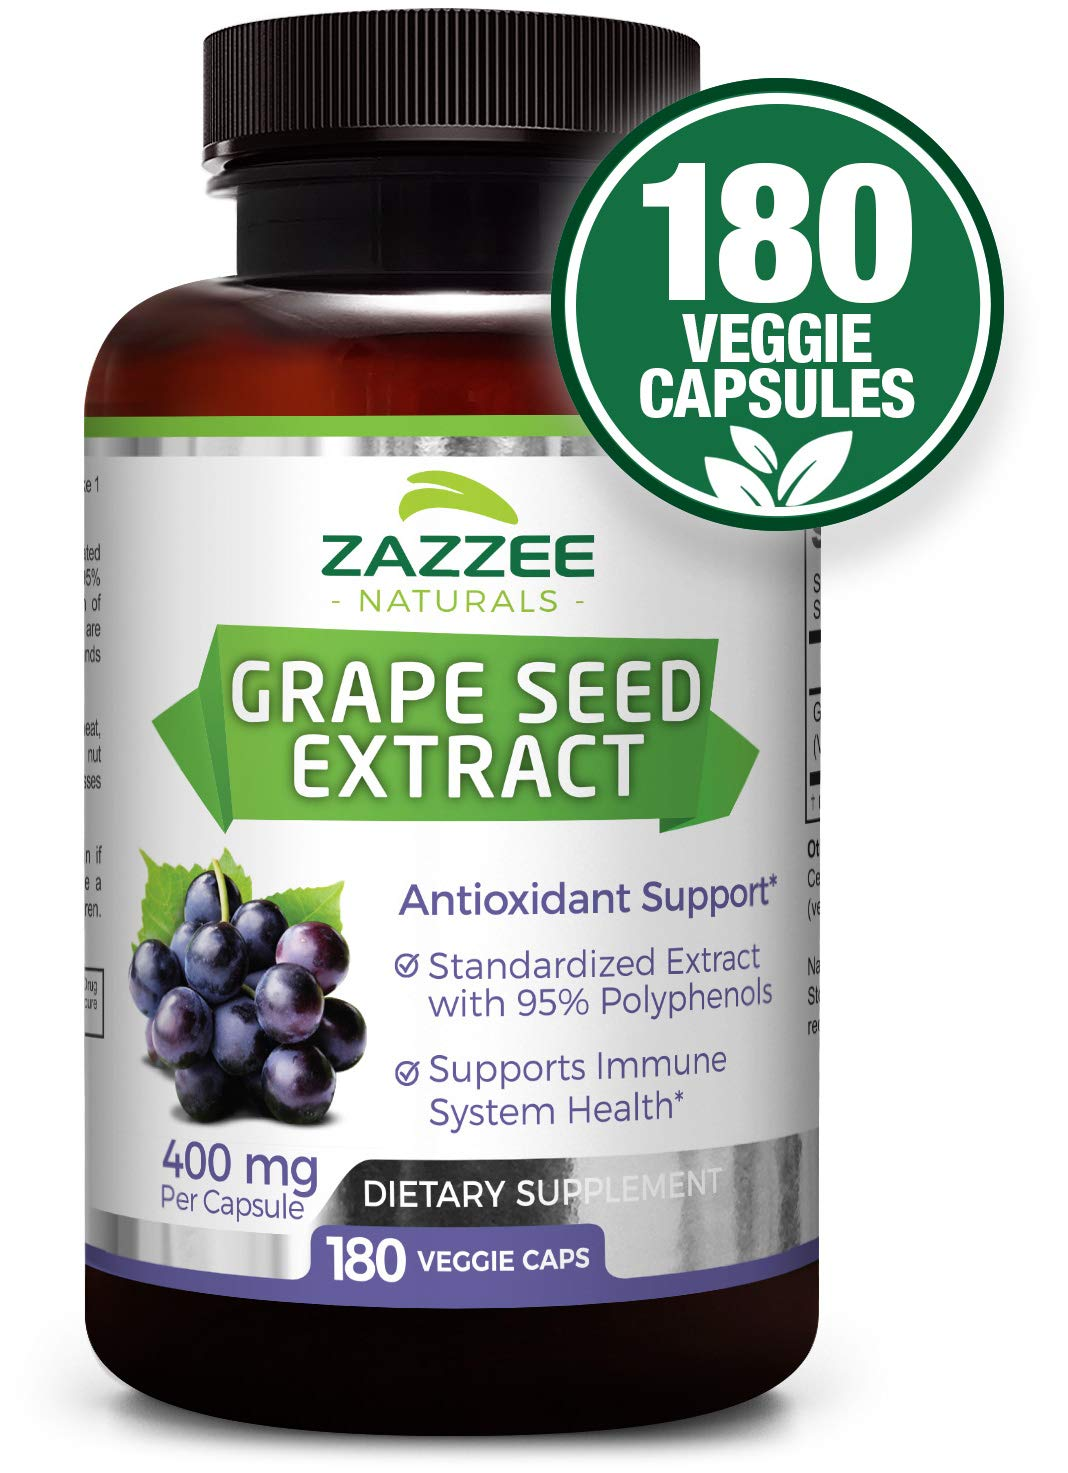 Grape Seed Extract | 400 mg | 6 Month Supply | 180 Veggie Caps | 95% Proanthocyanidins | All Natural, Vegan and Non-GMO | Extra Strength Pharmaceutical Grade